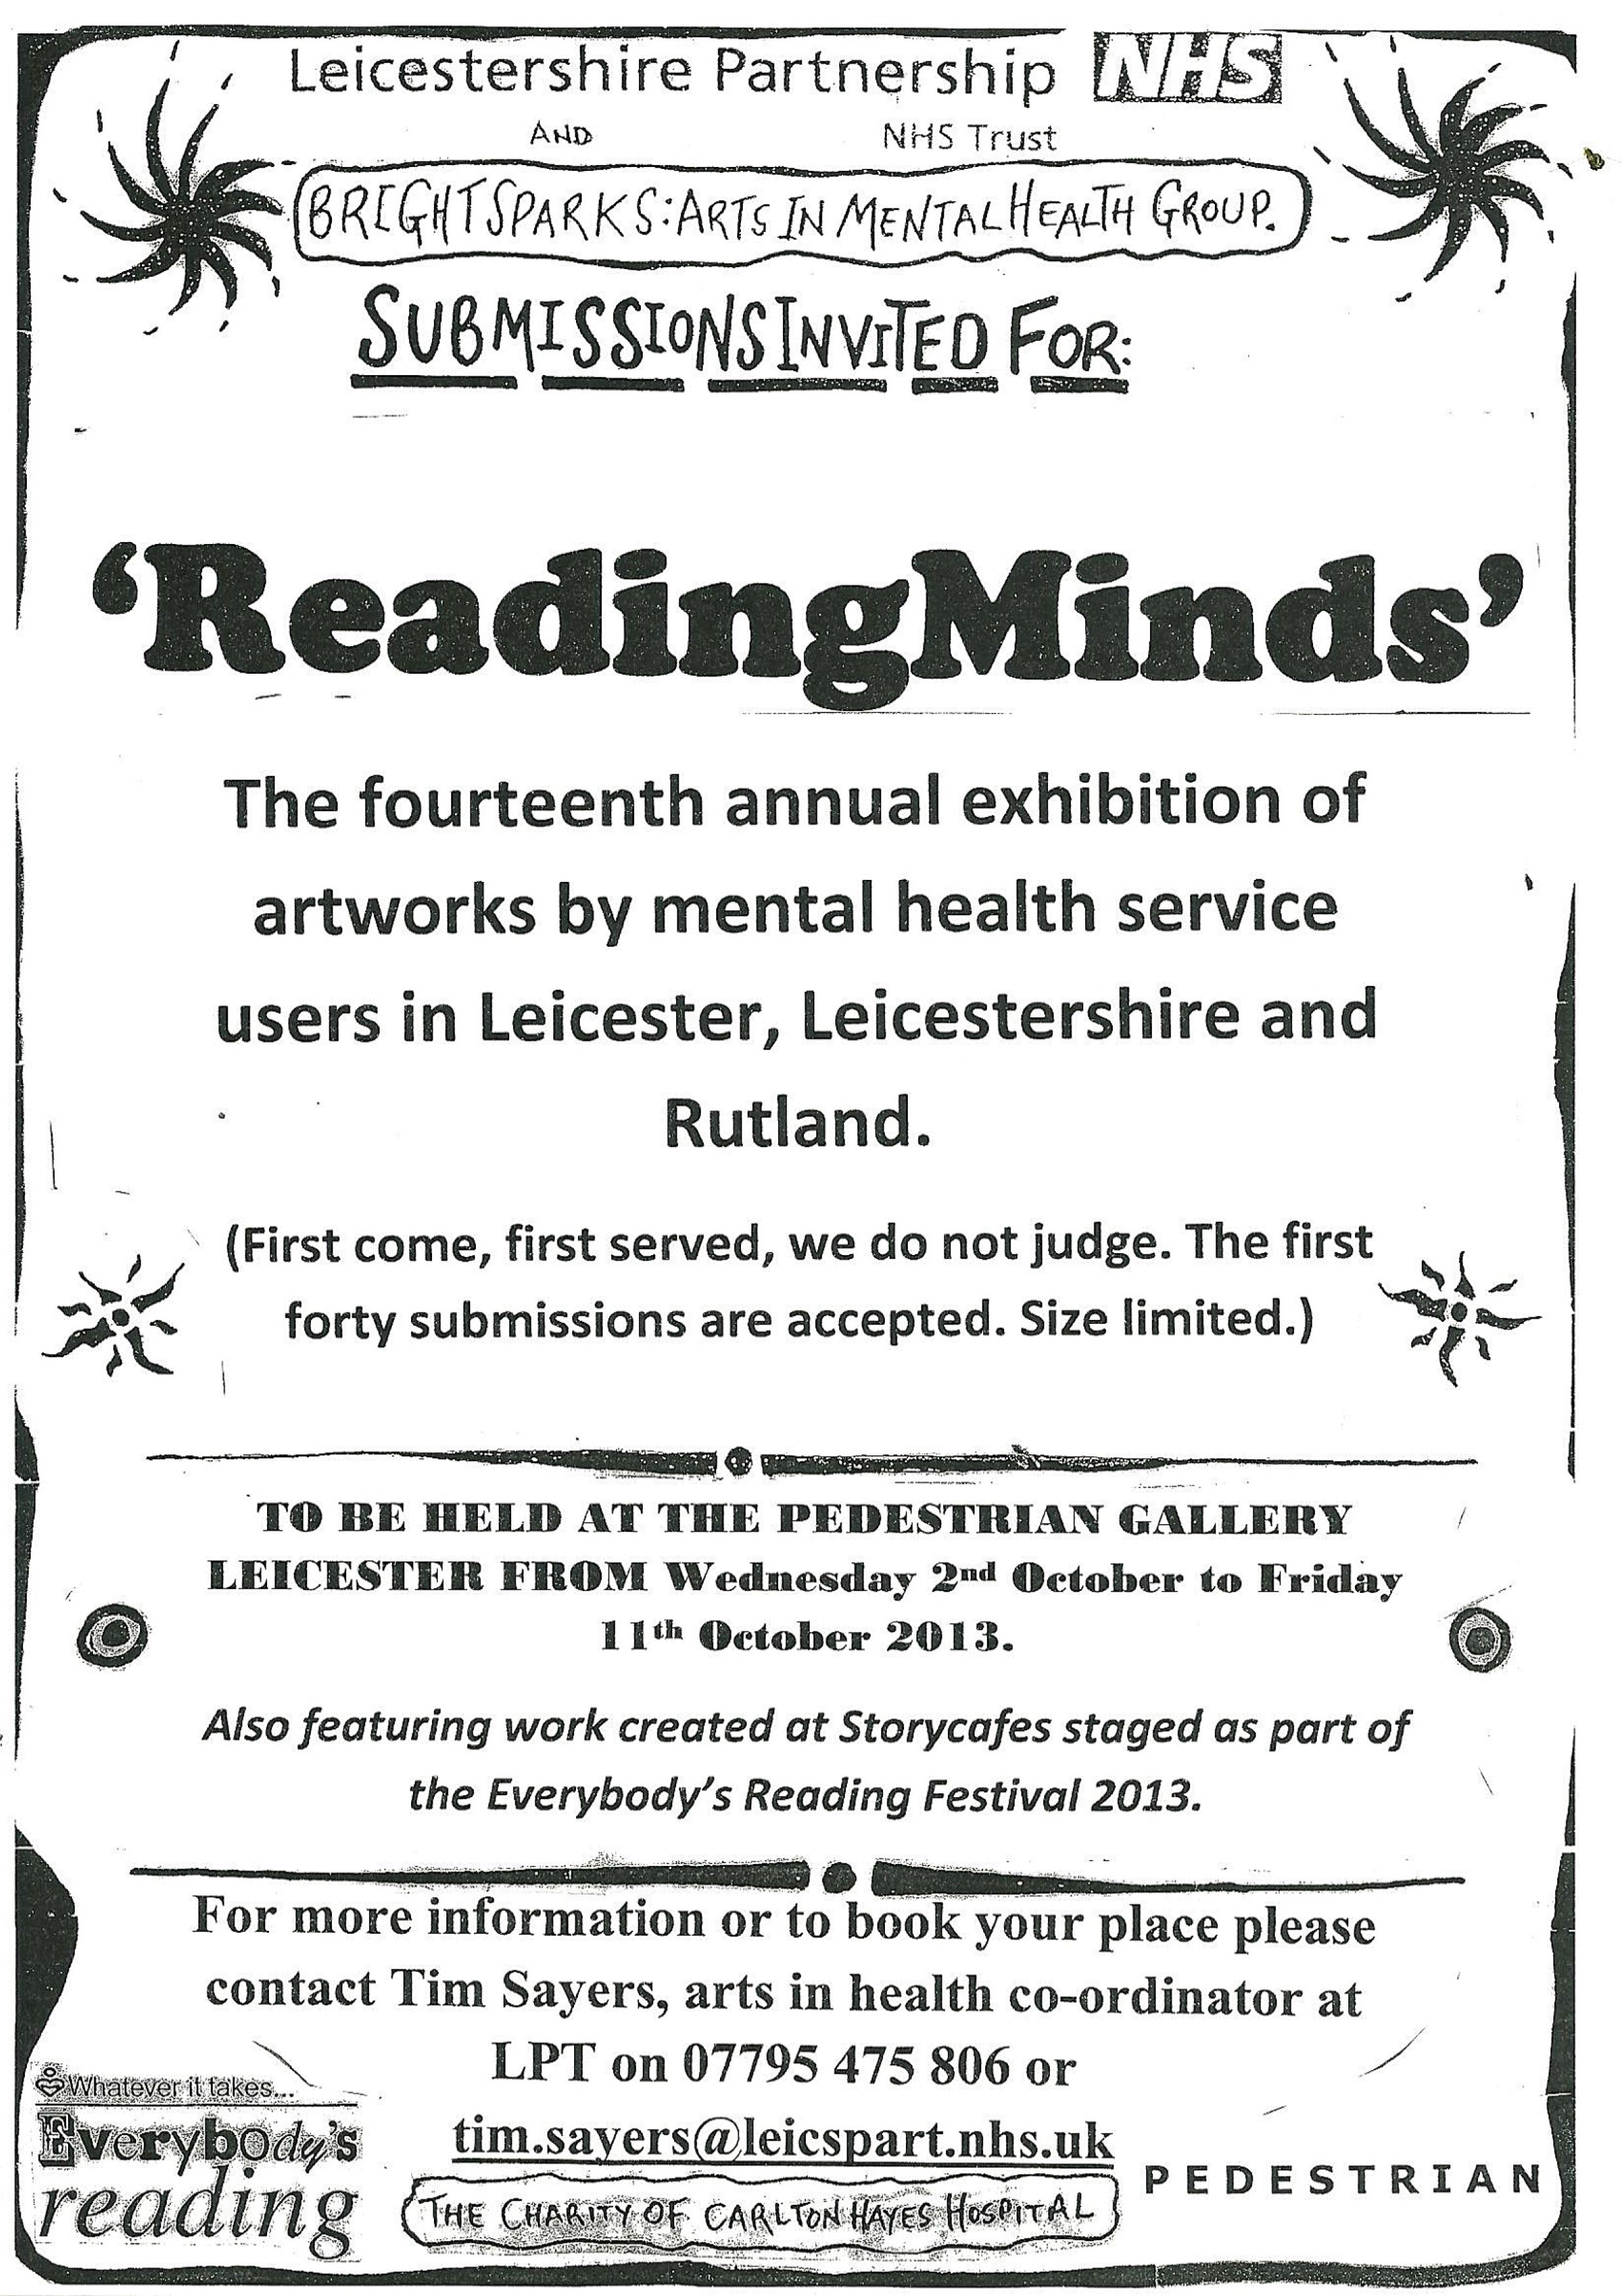 Reading Minds Annual Exhibition!